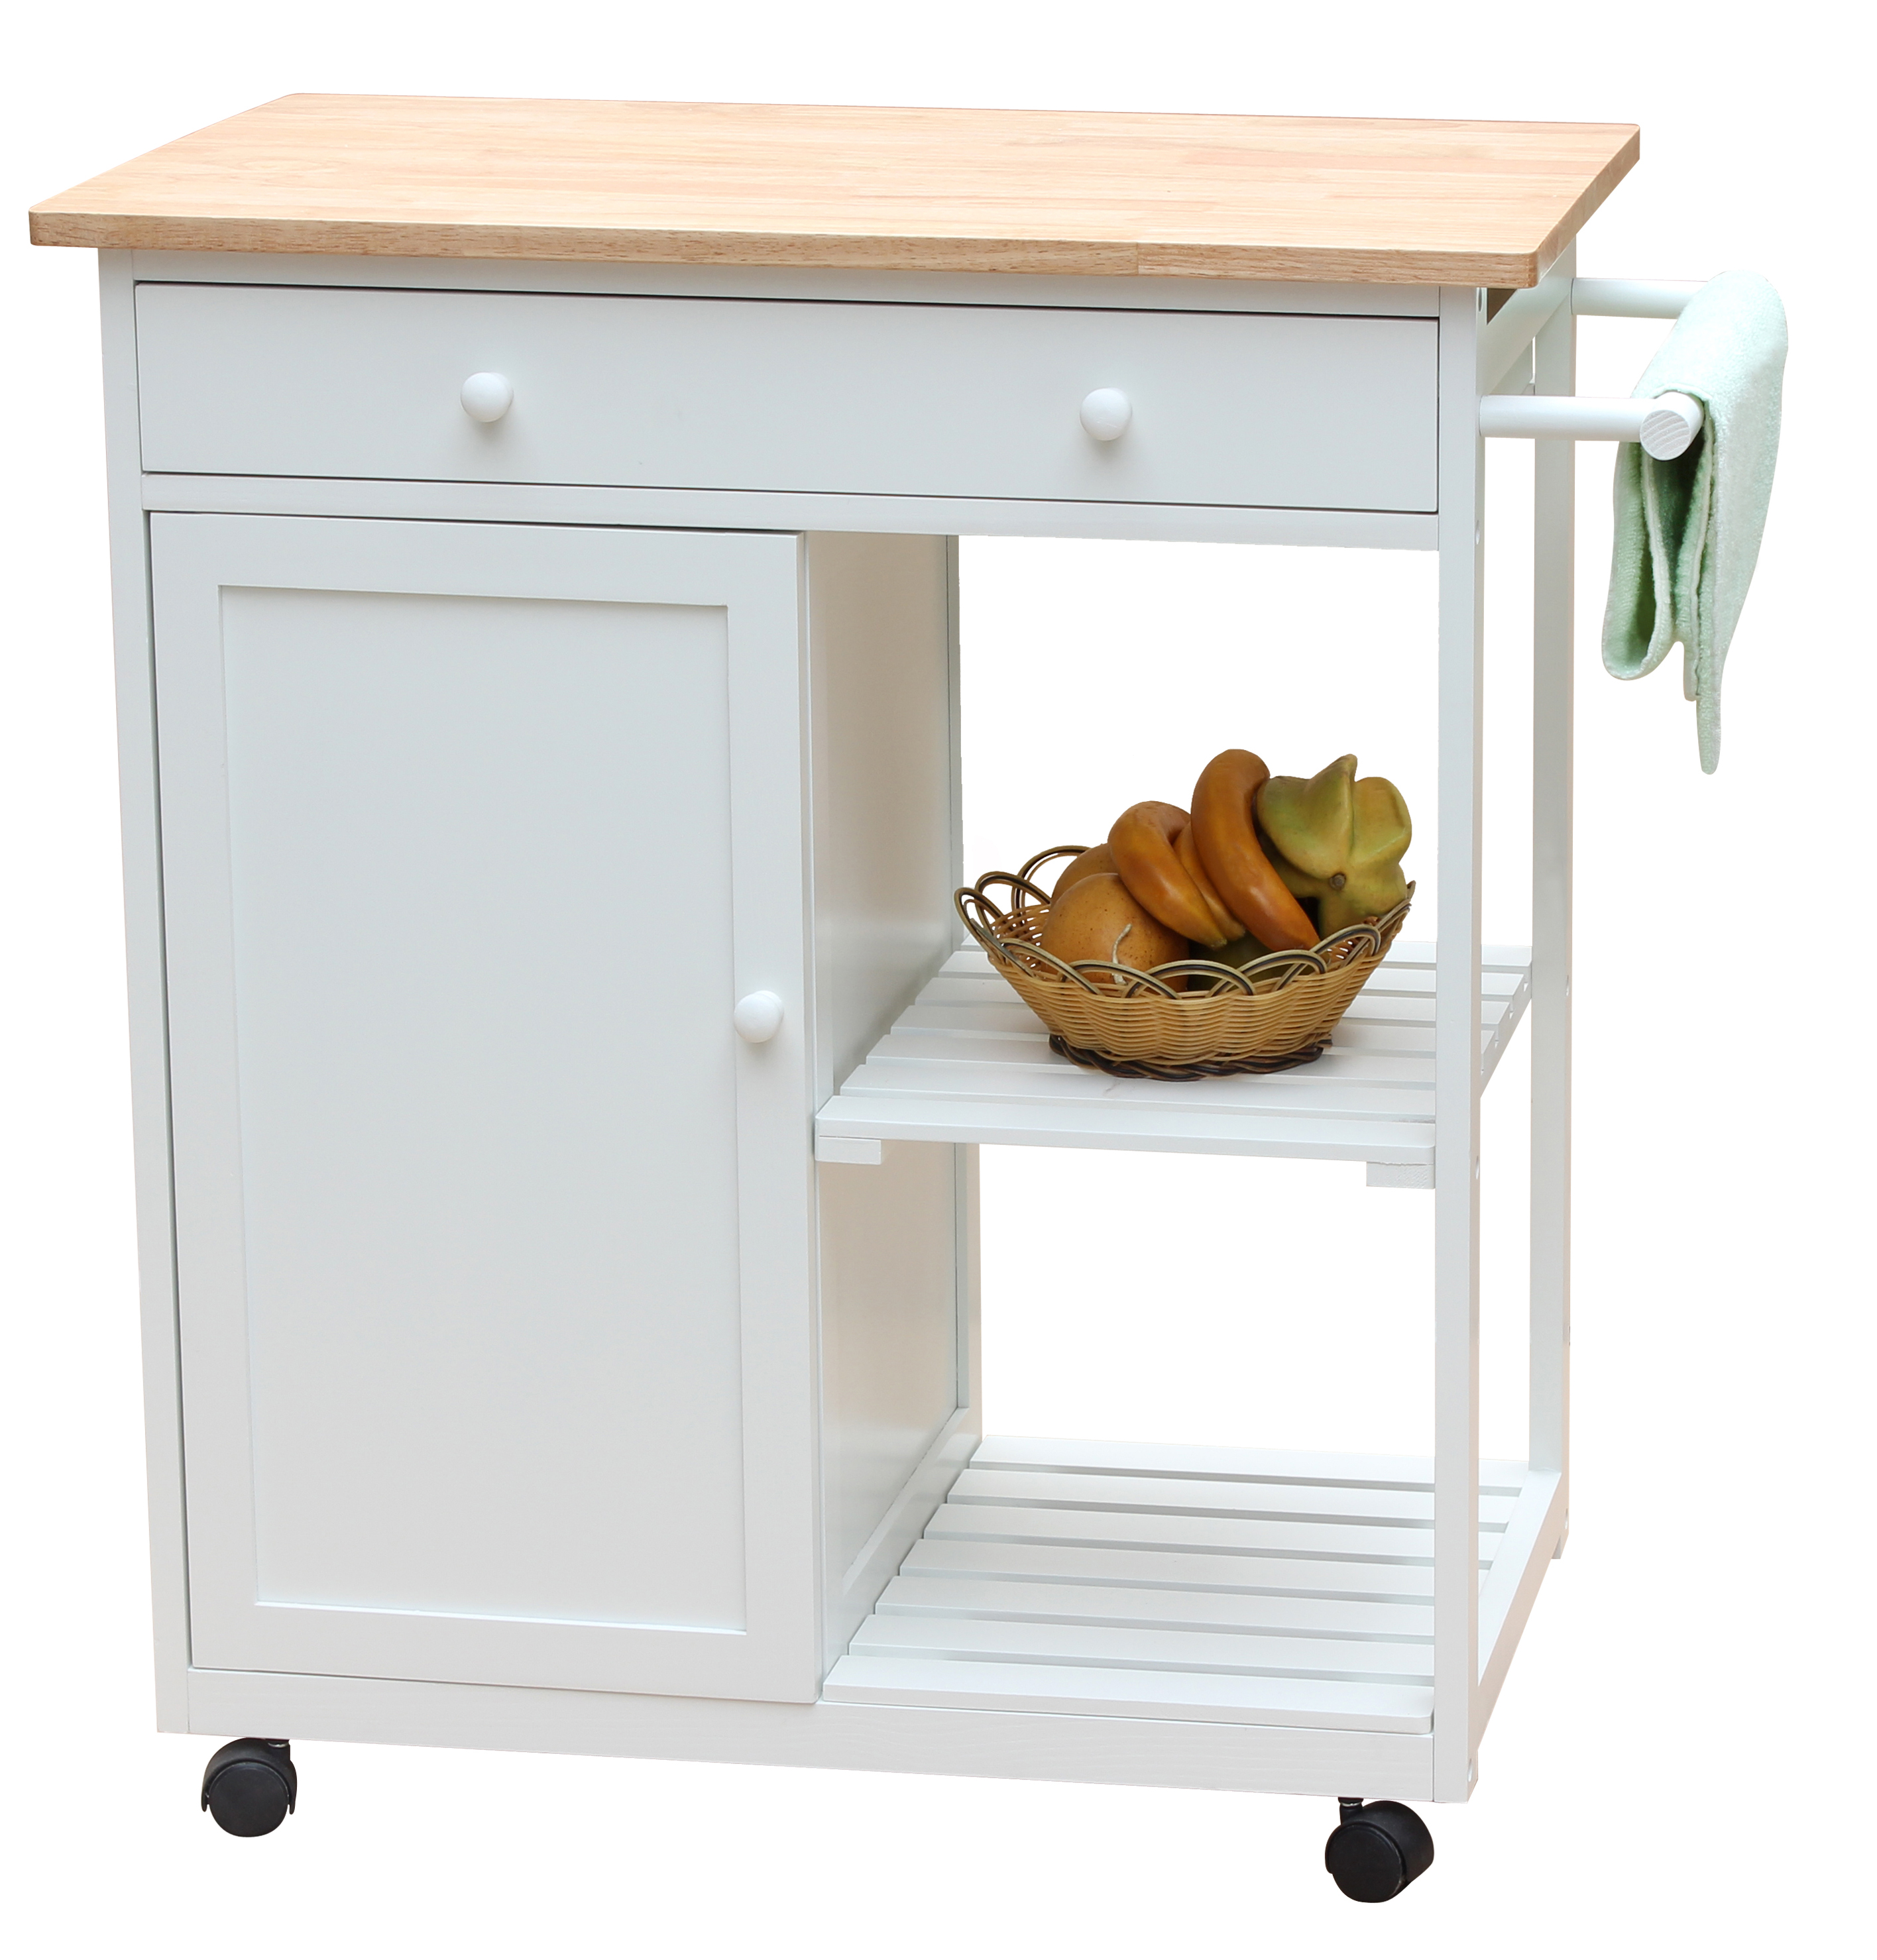 Modern Wooden Mobile Kitchen Island Cart On Wheels Wooden White Natural Butcher Block Buy Modern Wooden Mobile Kitchen Island Cart Wooden White